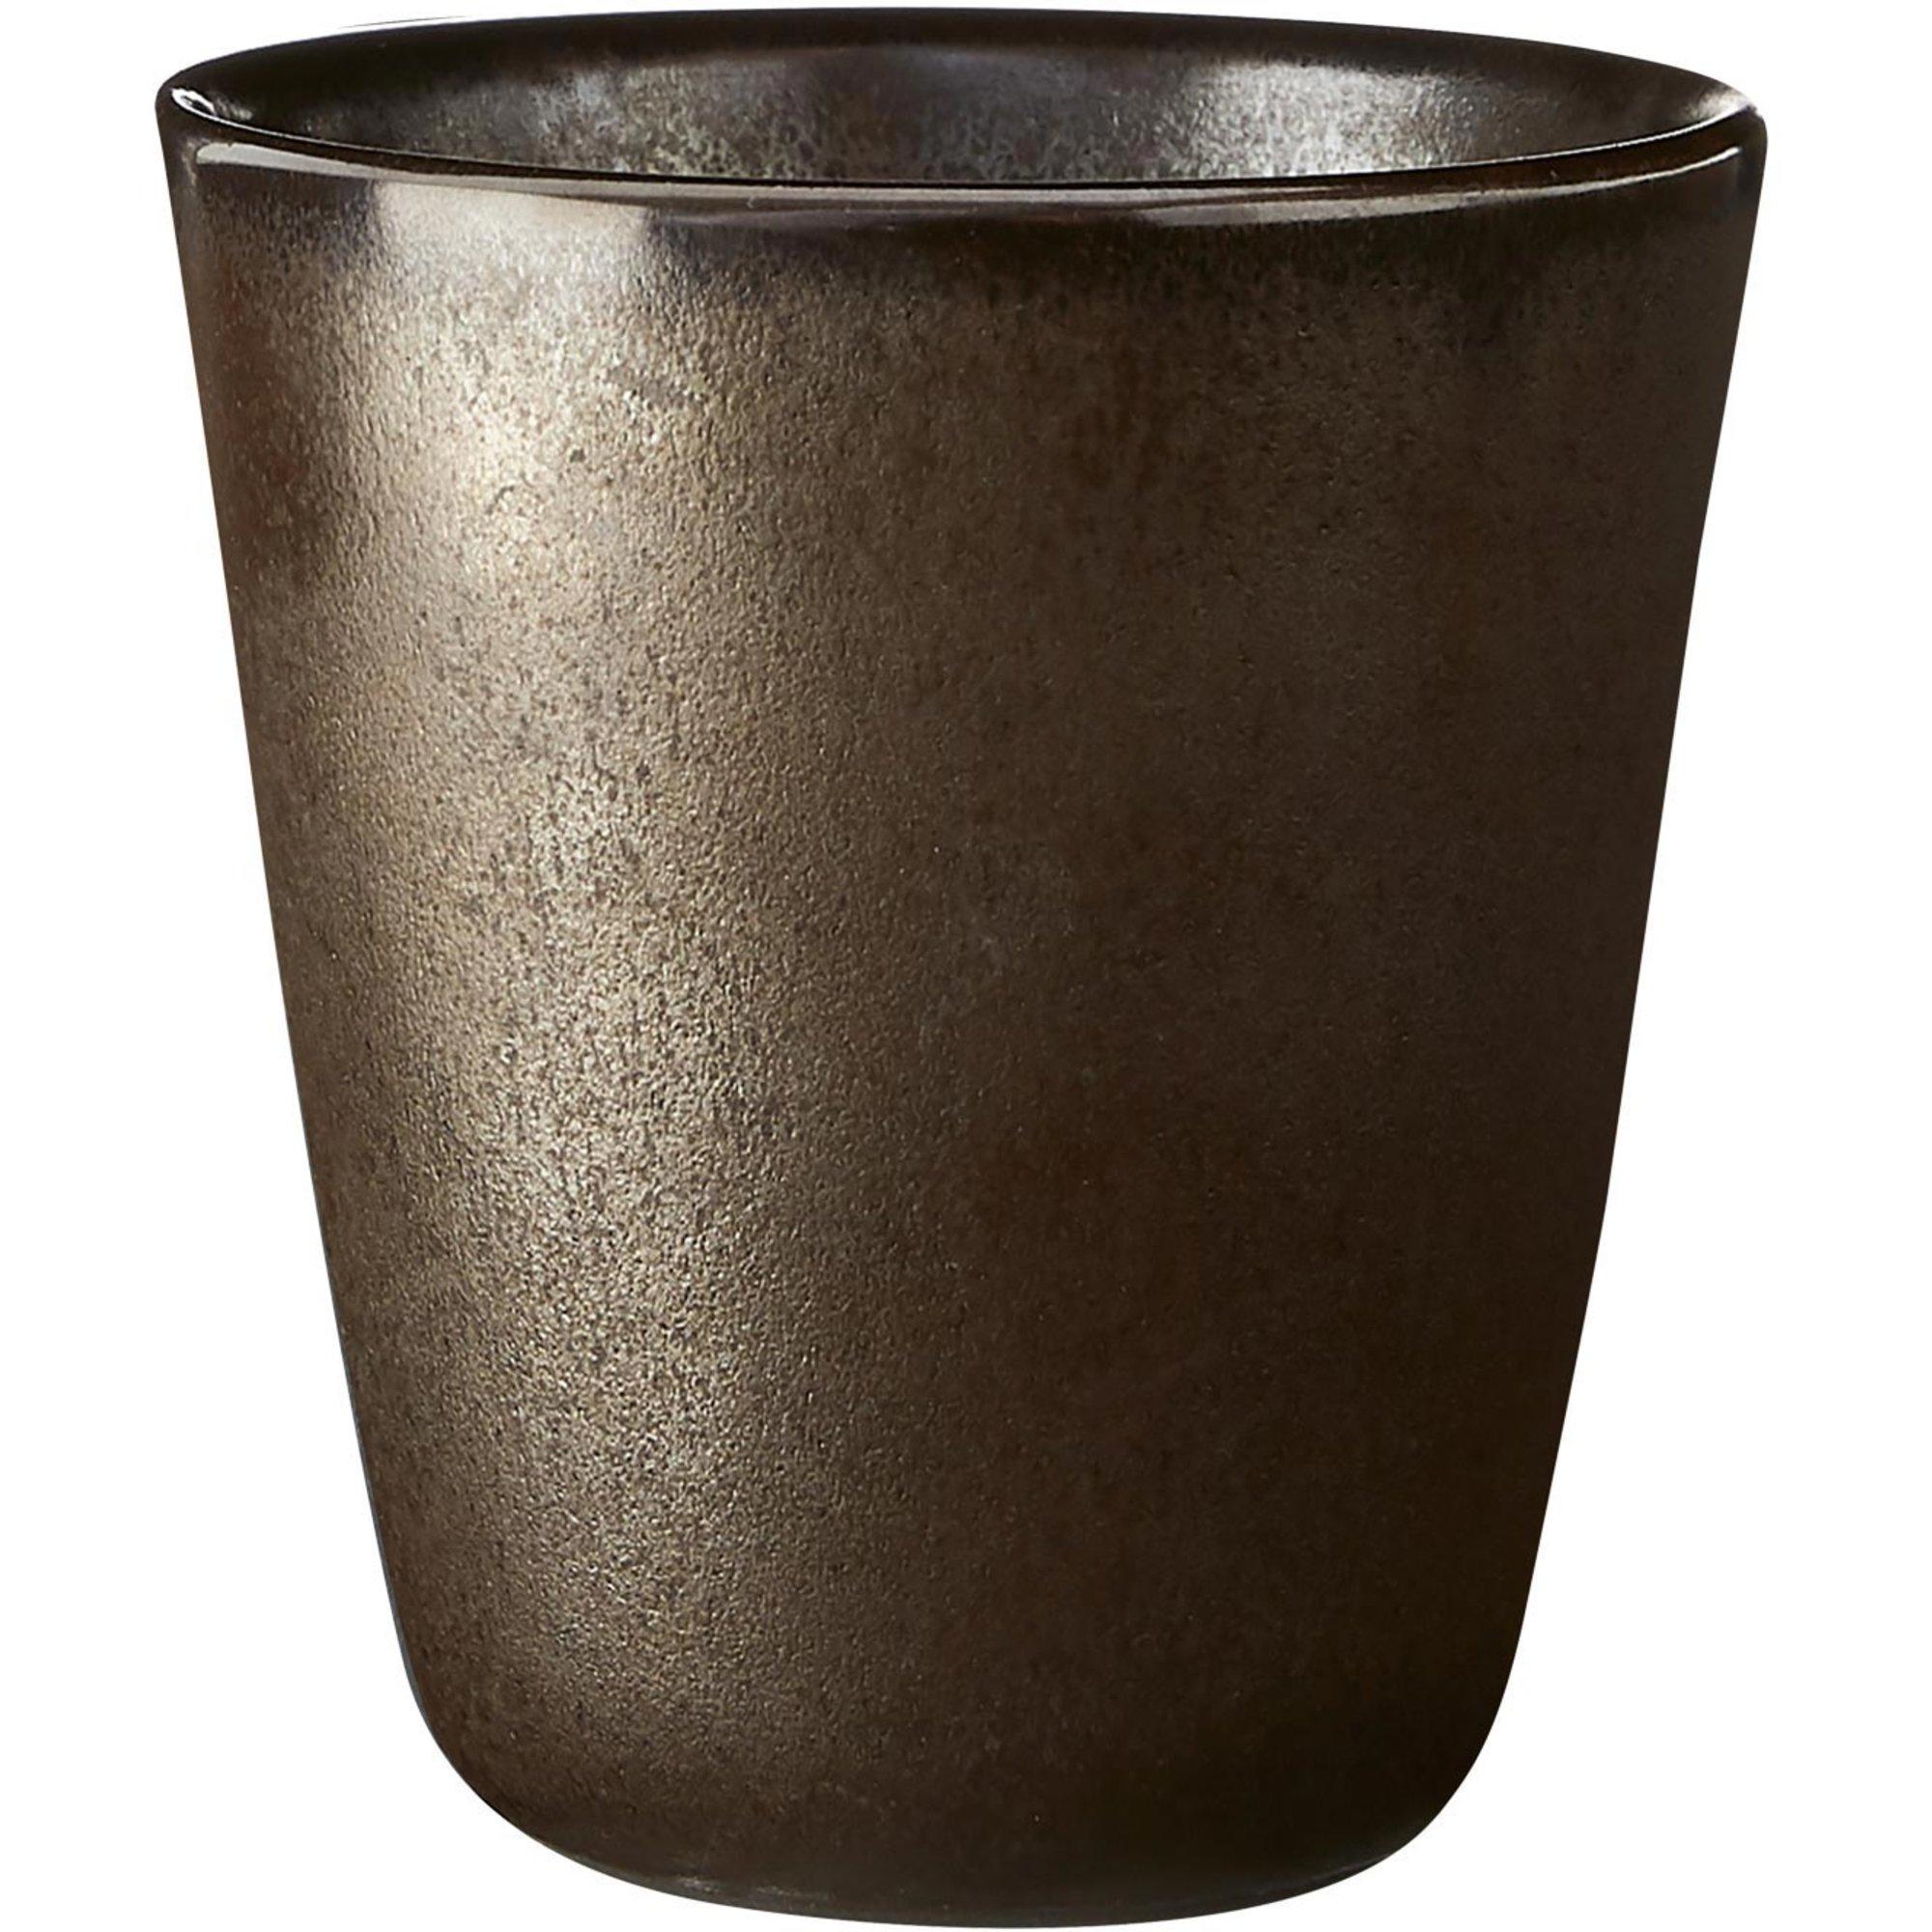 Aida RAW mugg metallisk brun 25 cl.